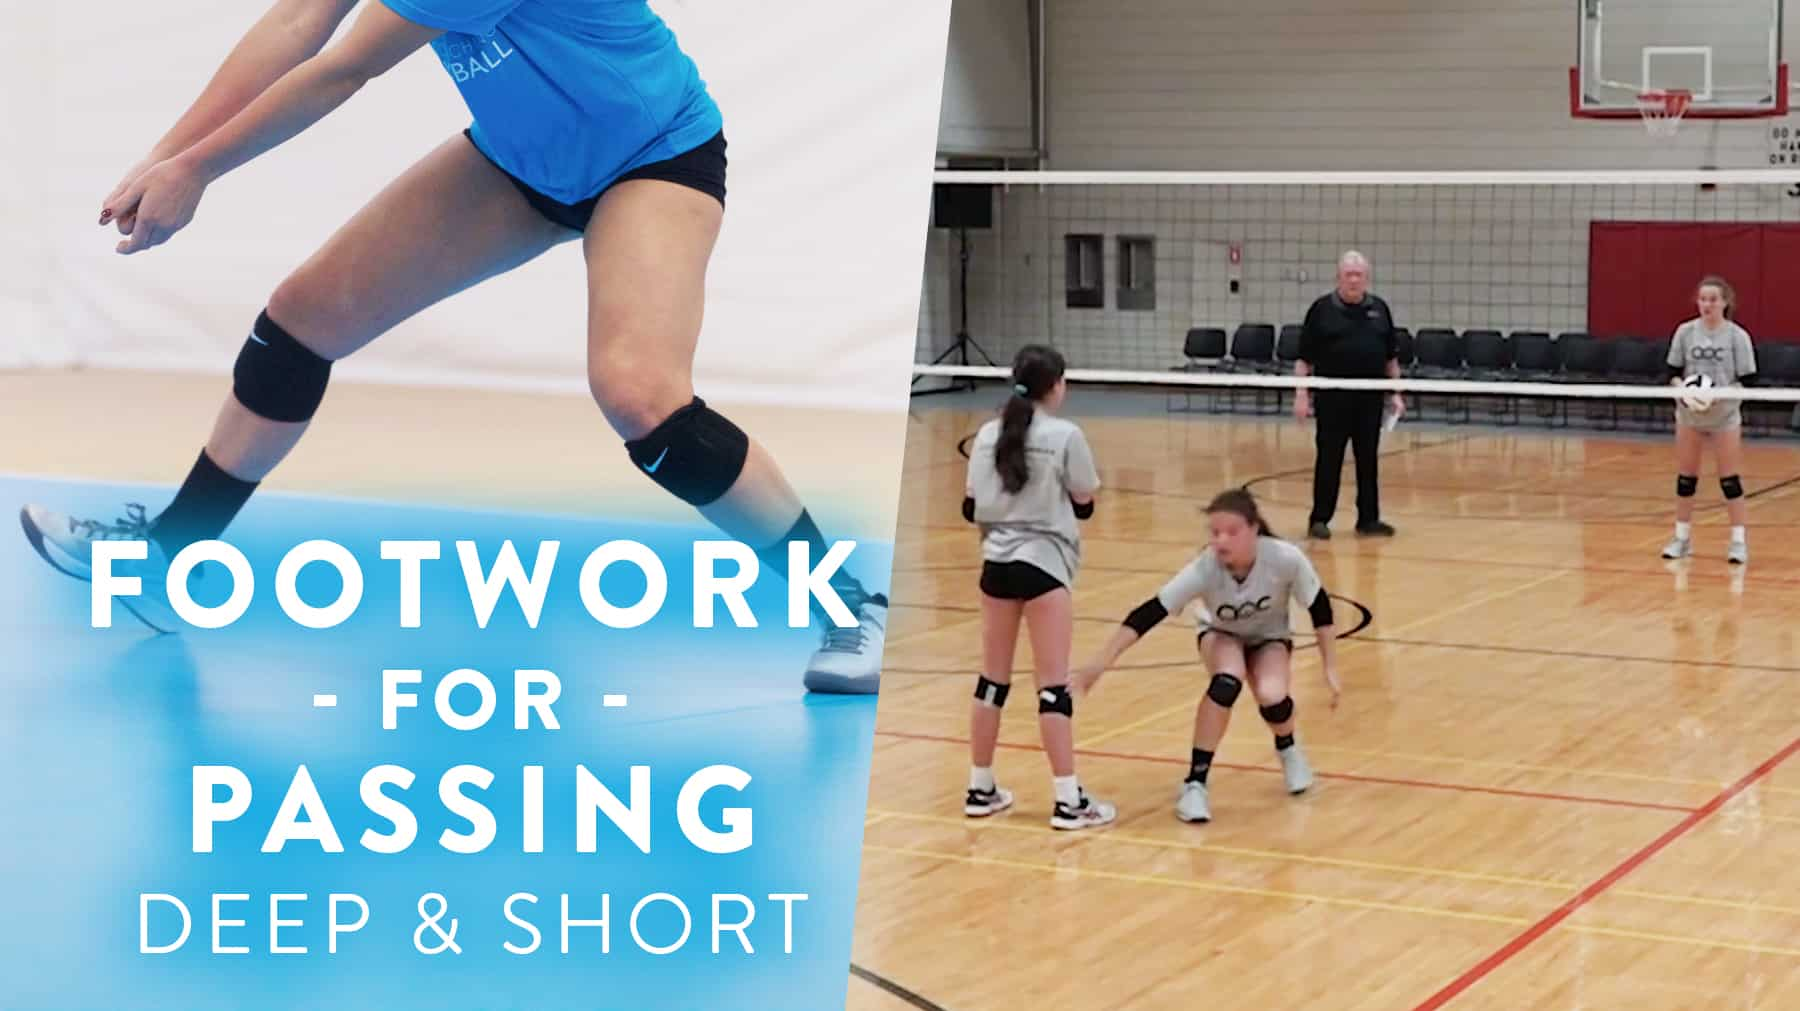 Footwork For Passing Deep And Short